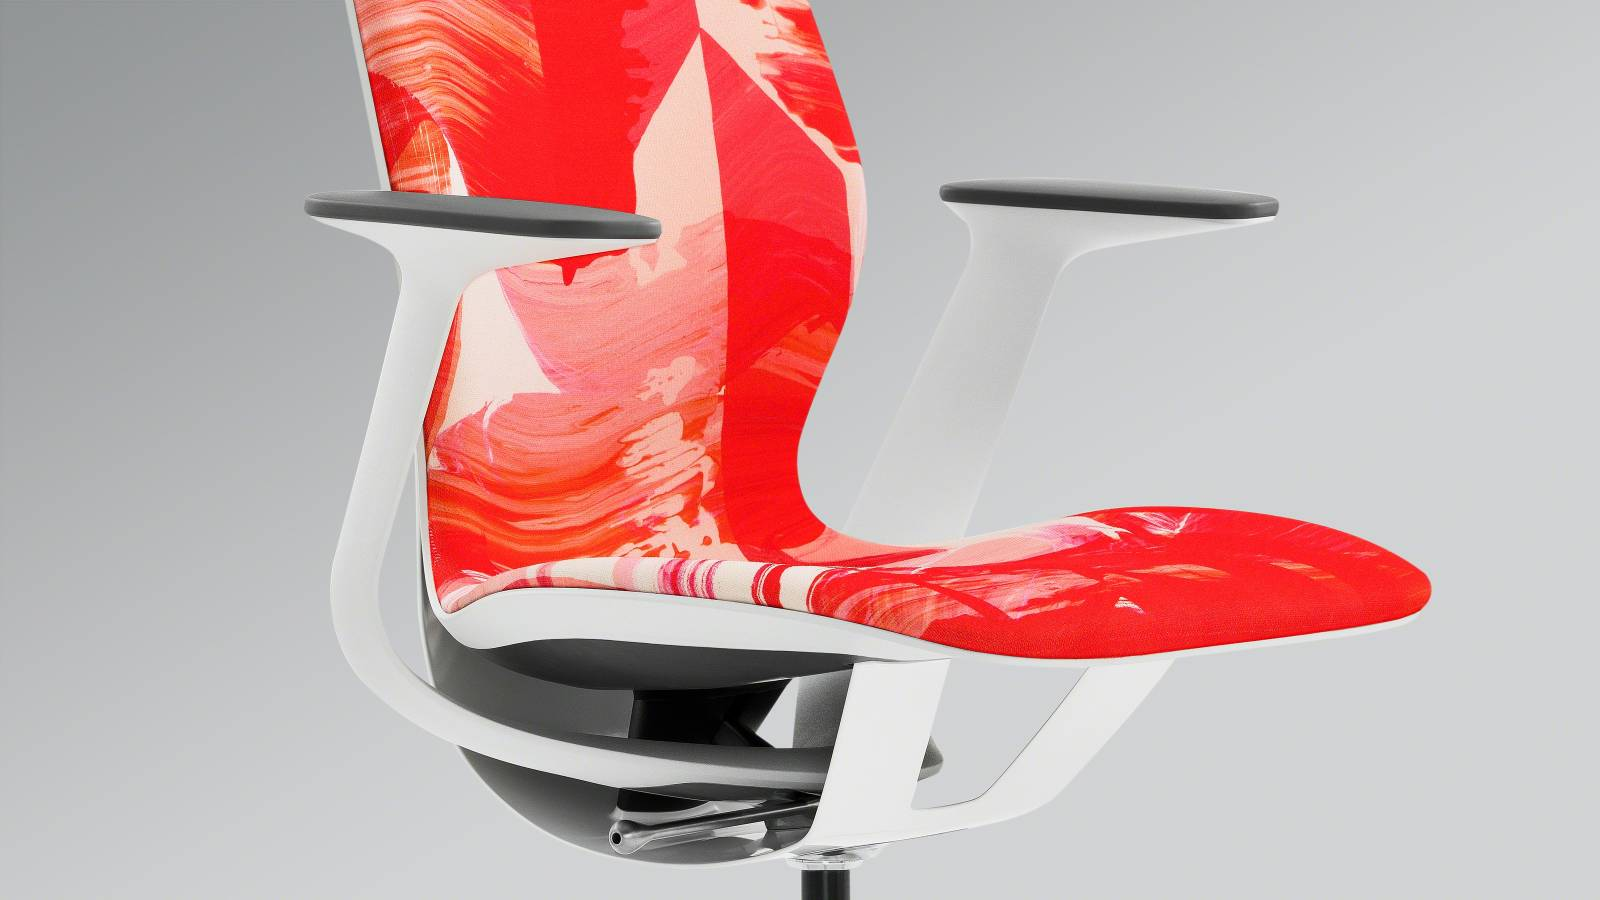 Steelcase Introduces SILQ: An Innovation in Seating Design